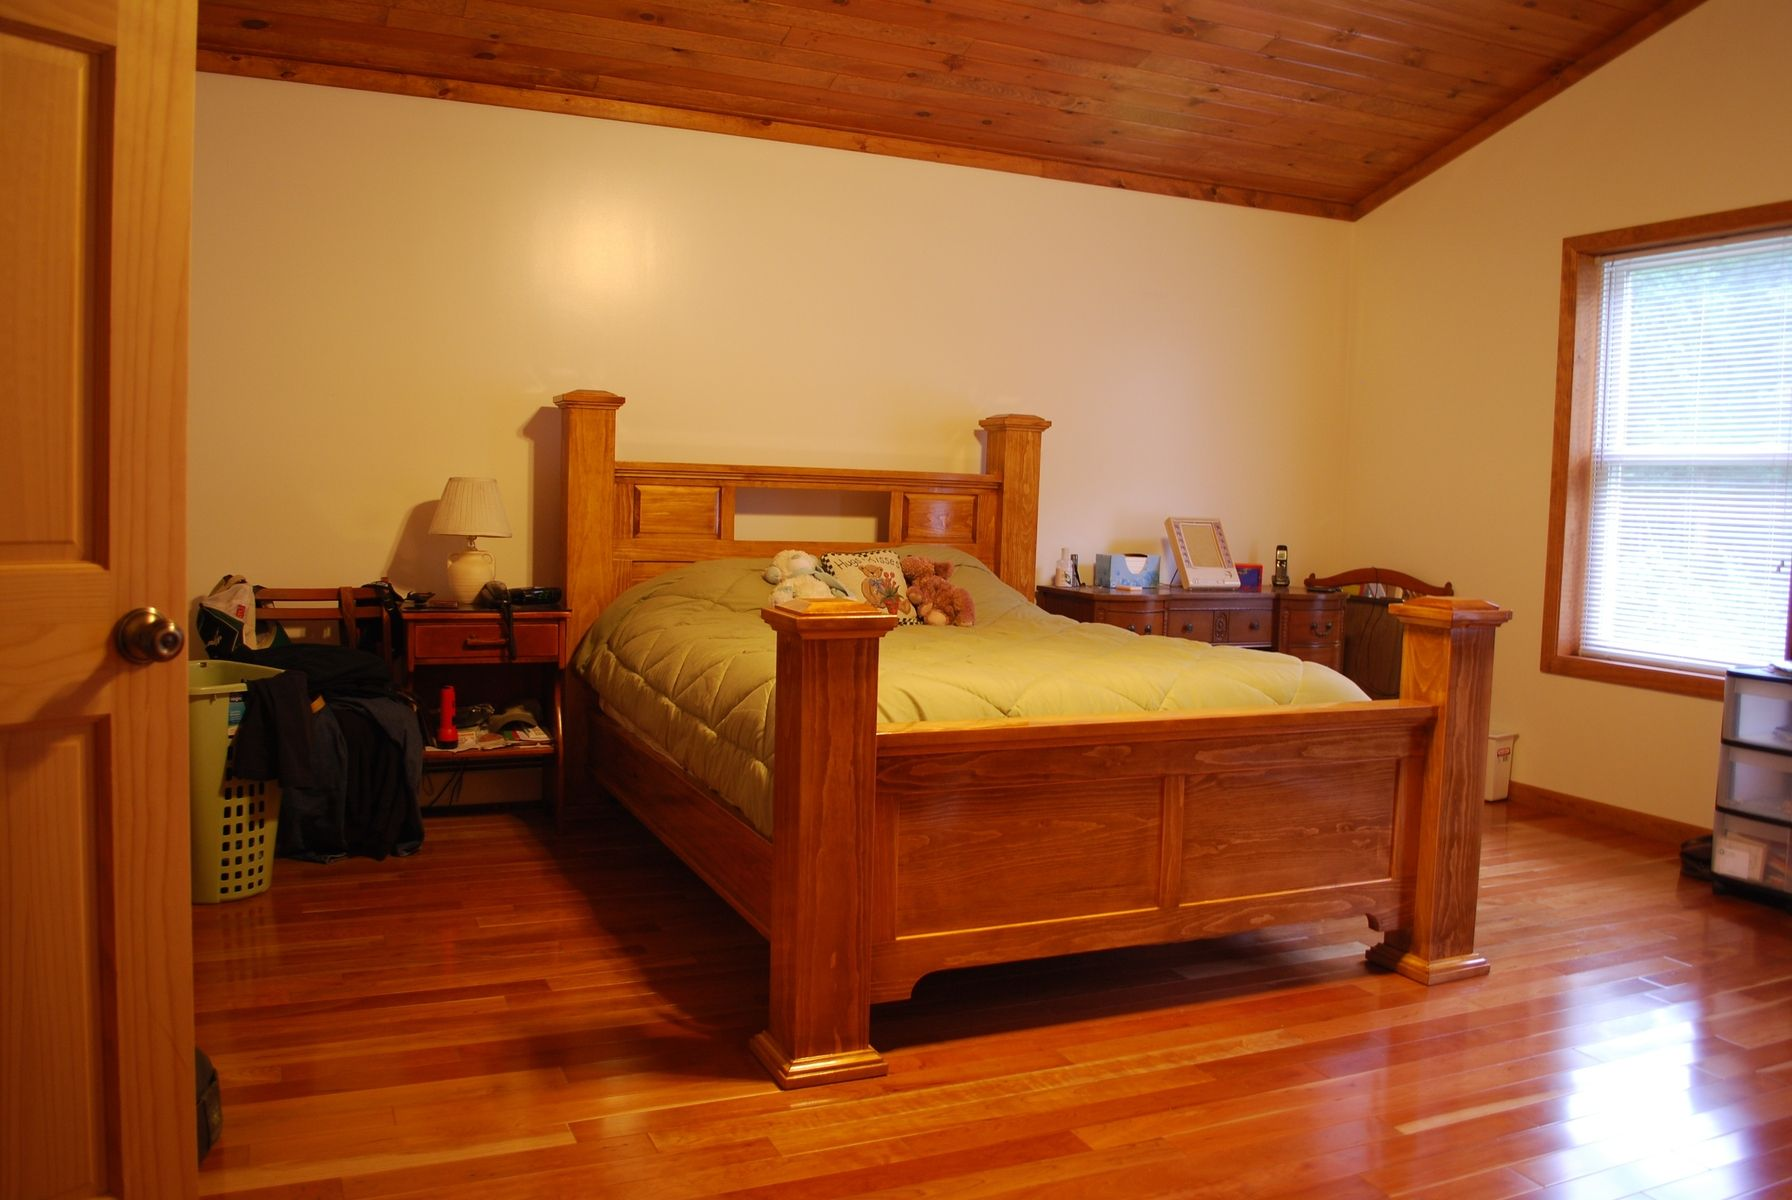 Handmade Four Post Bed By Larue Woodworking Custommade Com